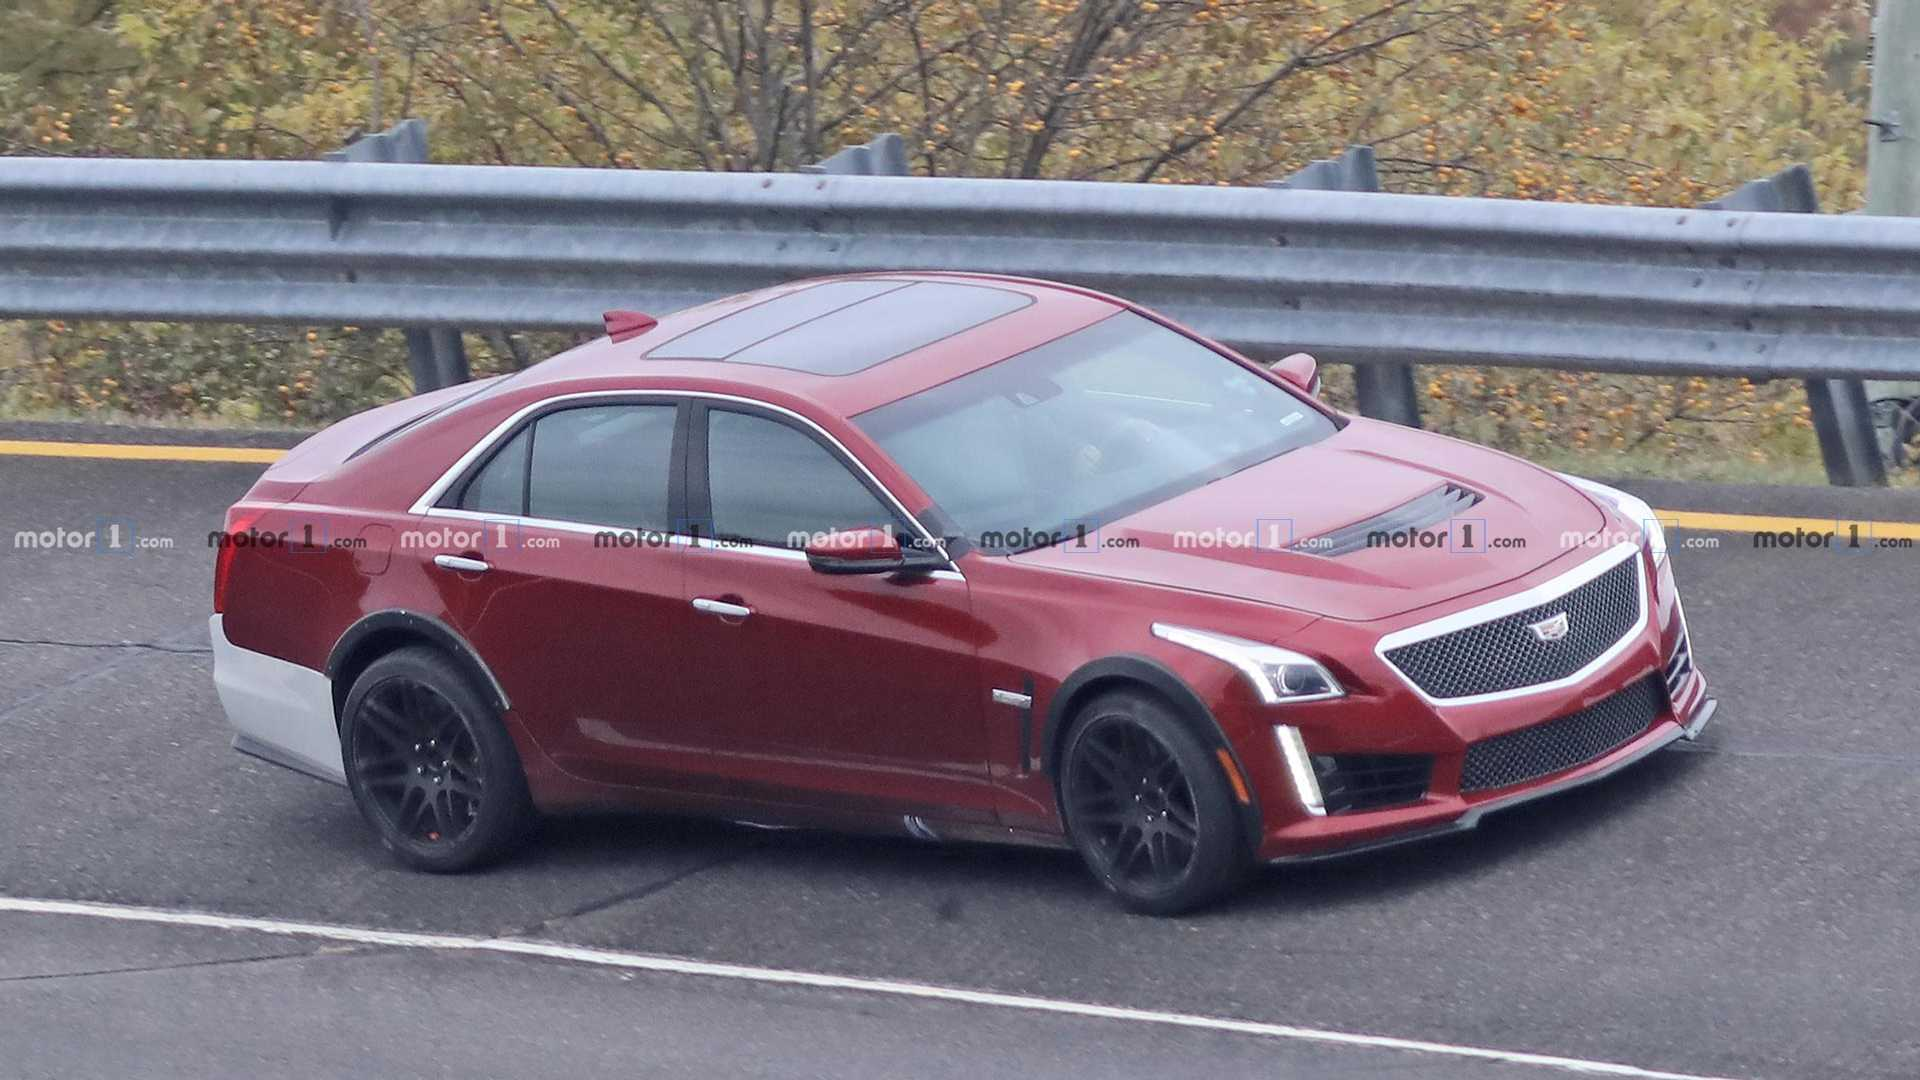 97 Gallery of Cadillac Cts V 2020 Redesign for Cadillac Cts V 2020